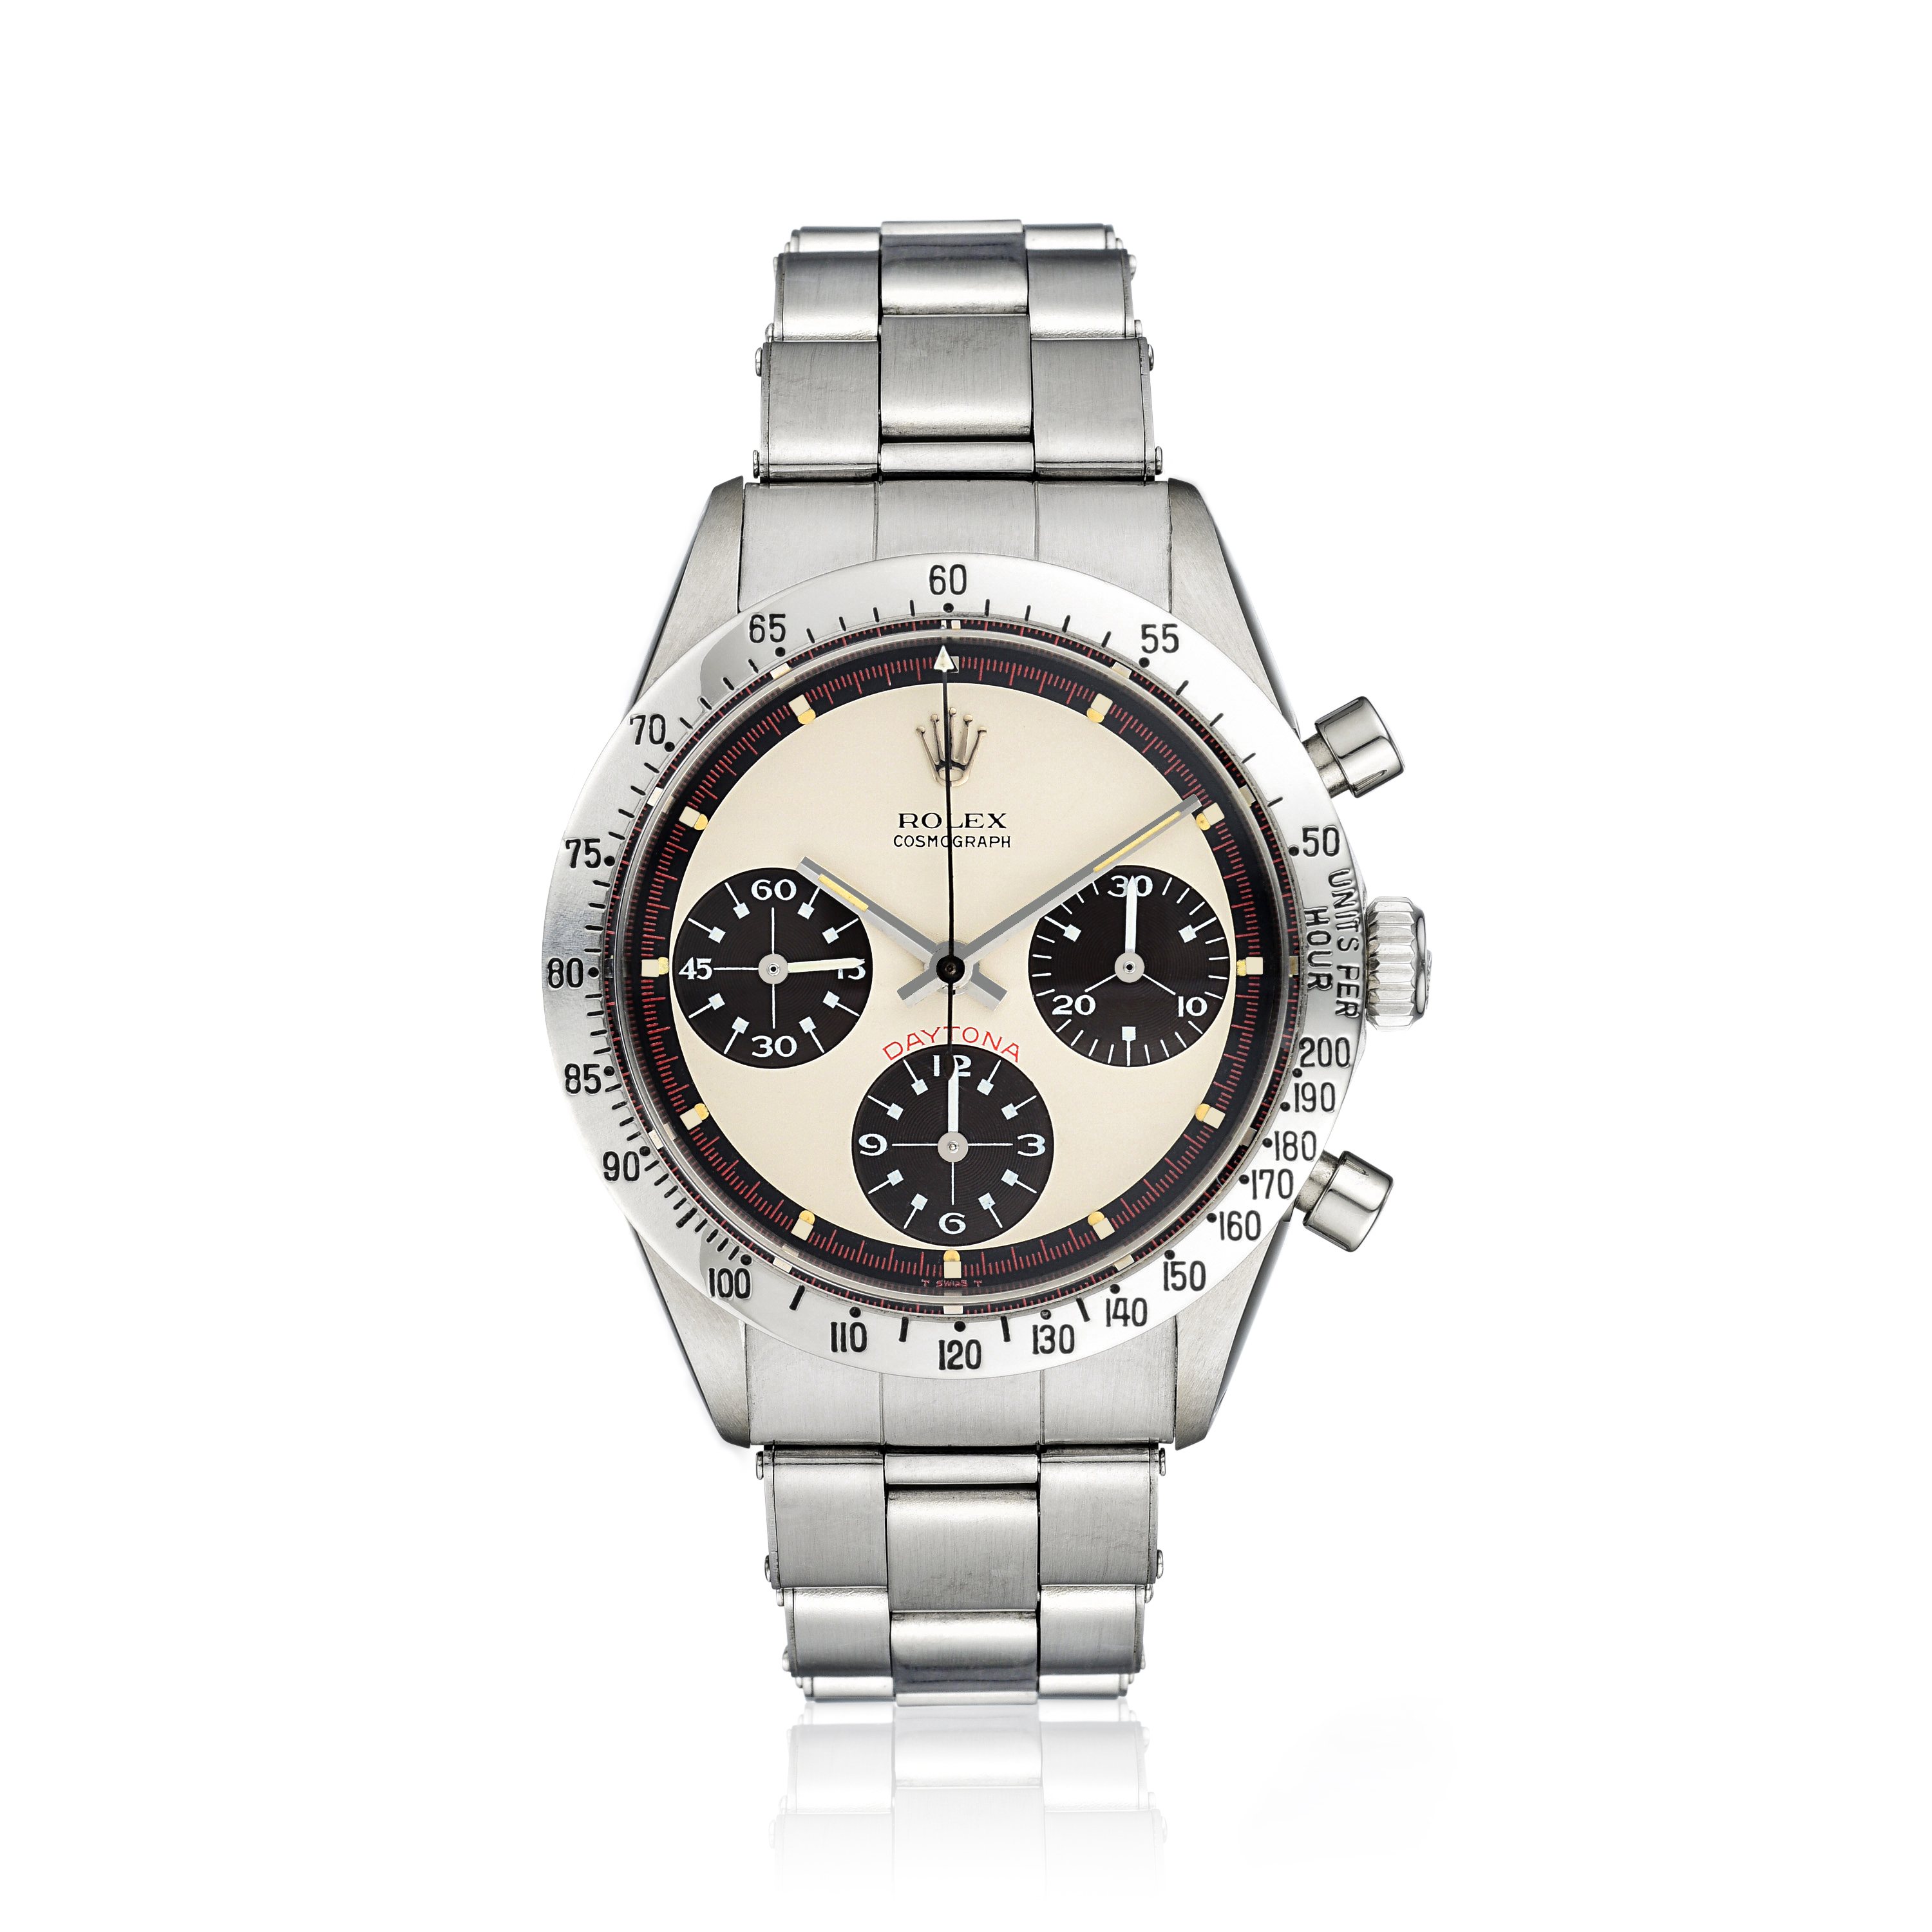 Rolex Paul Newman Daytona-Fortuna Auction Important Watches